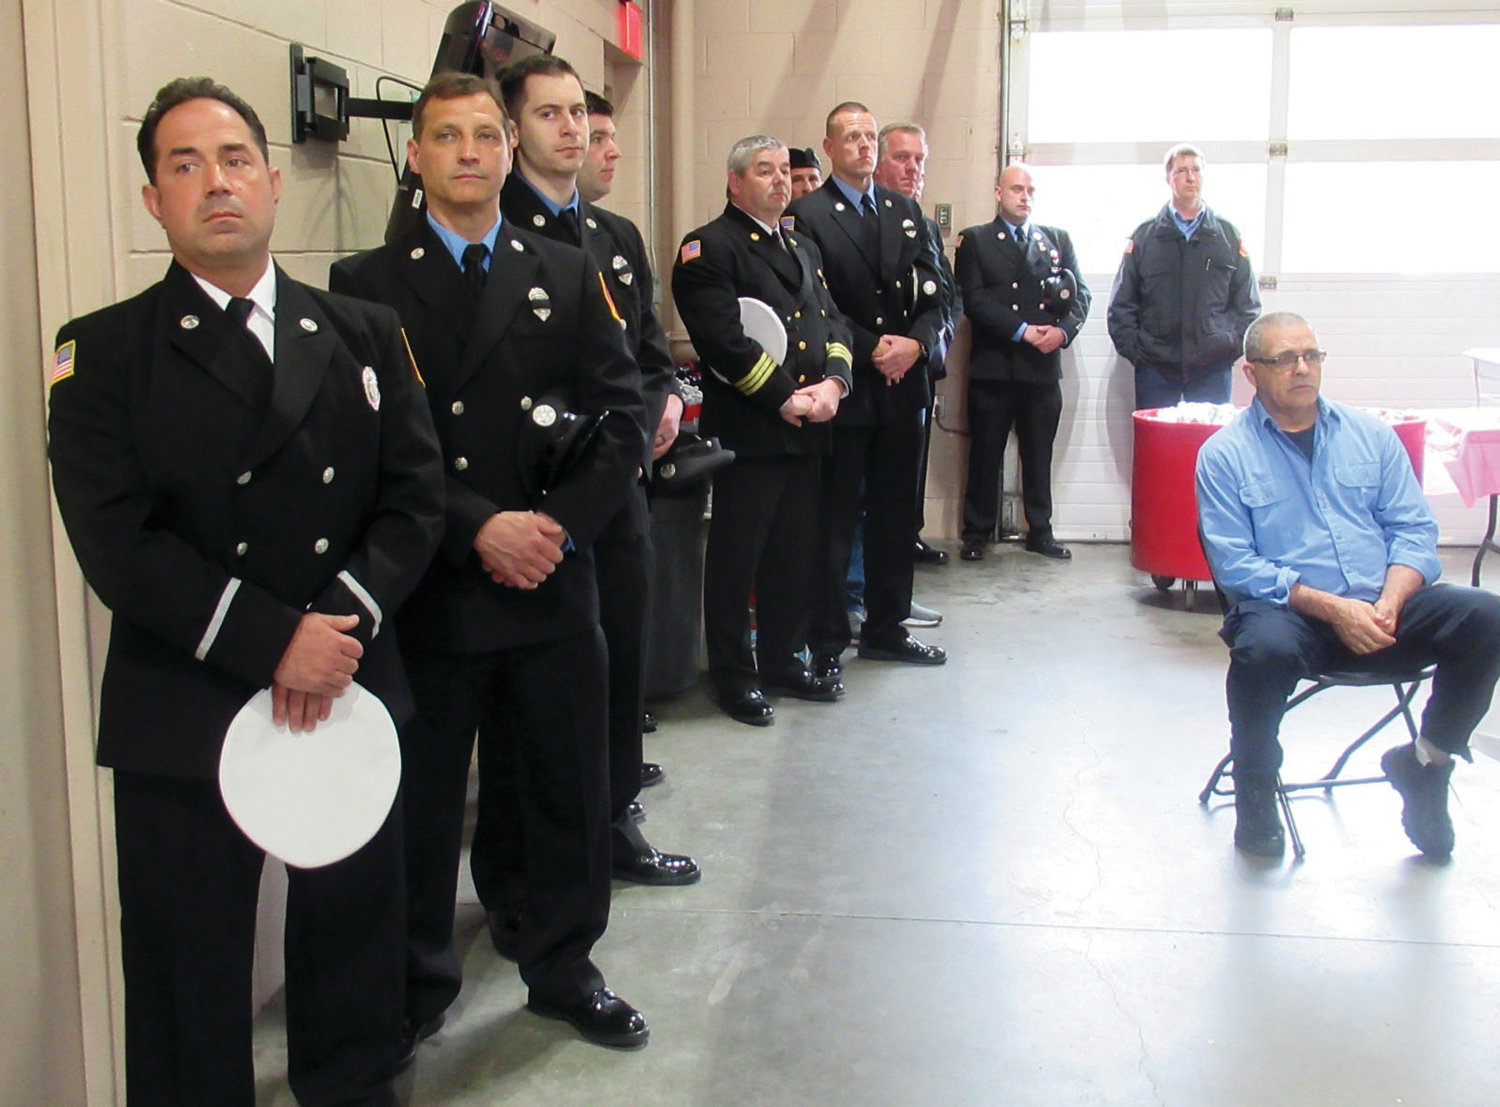 FIRE FORCE: Parade dress was the order of Sunday for most of the Johnston firefighters who remembered 19 deceased members during a moving memorial ceremony inside Station 1.